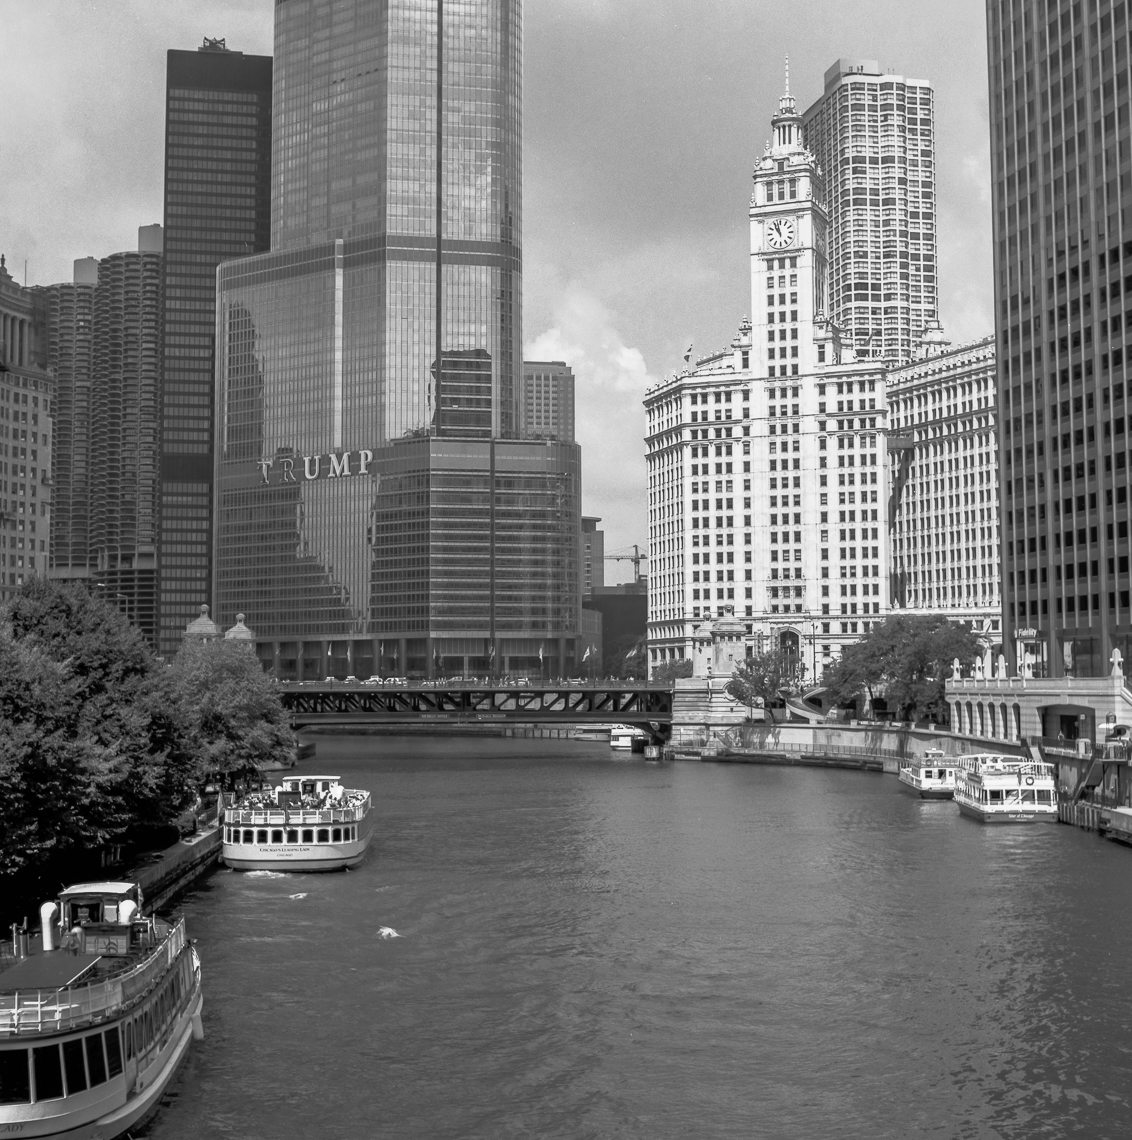 The Wrigley Building and Trump Tower viewed from the Columbus Street bridge.